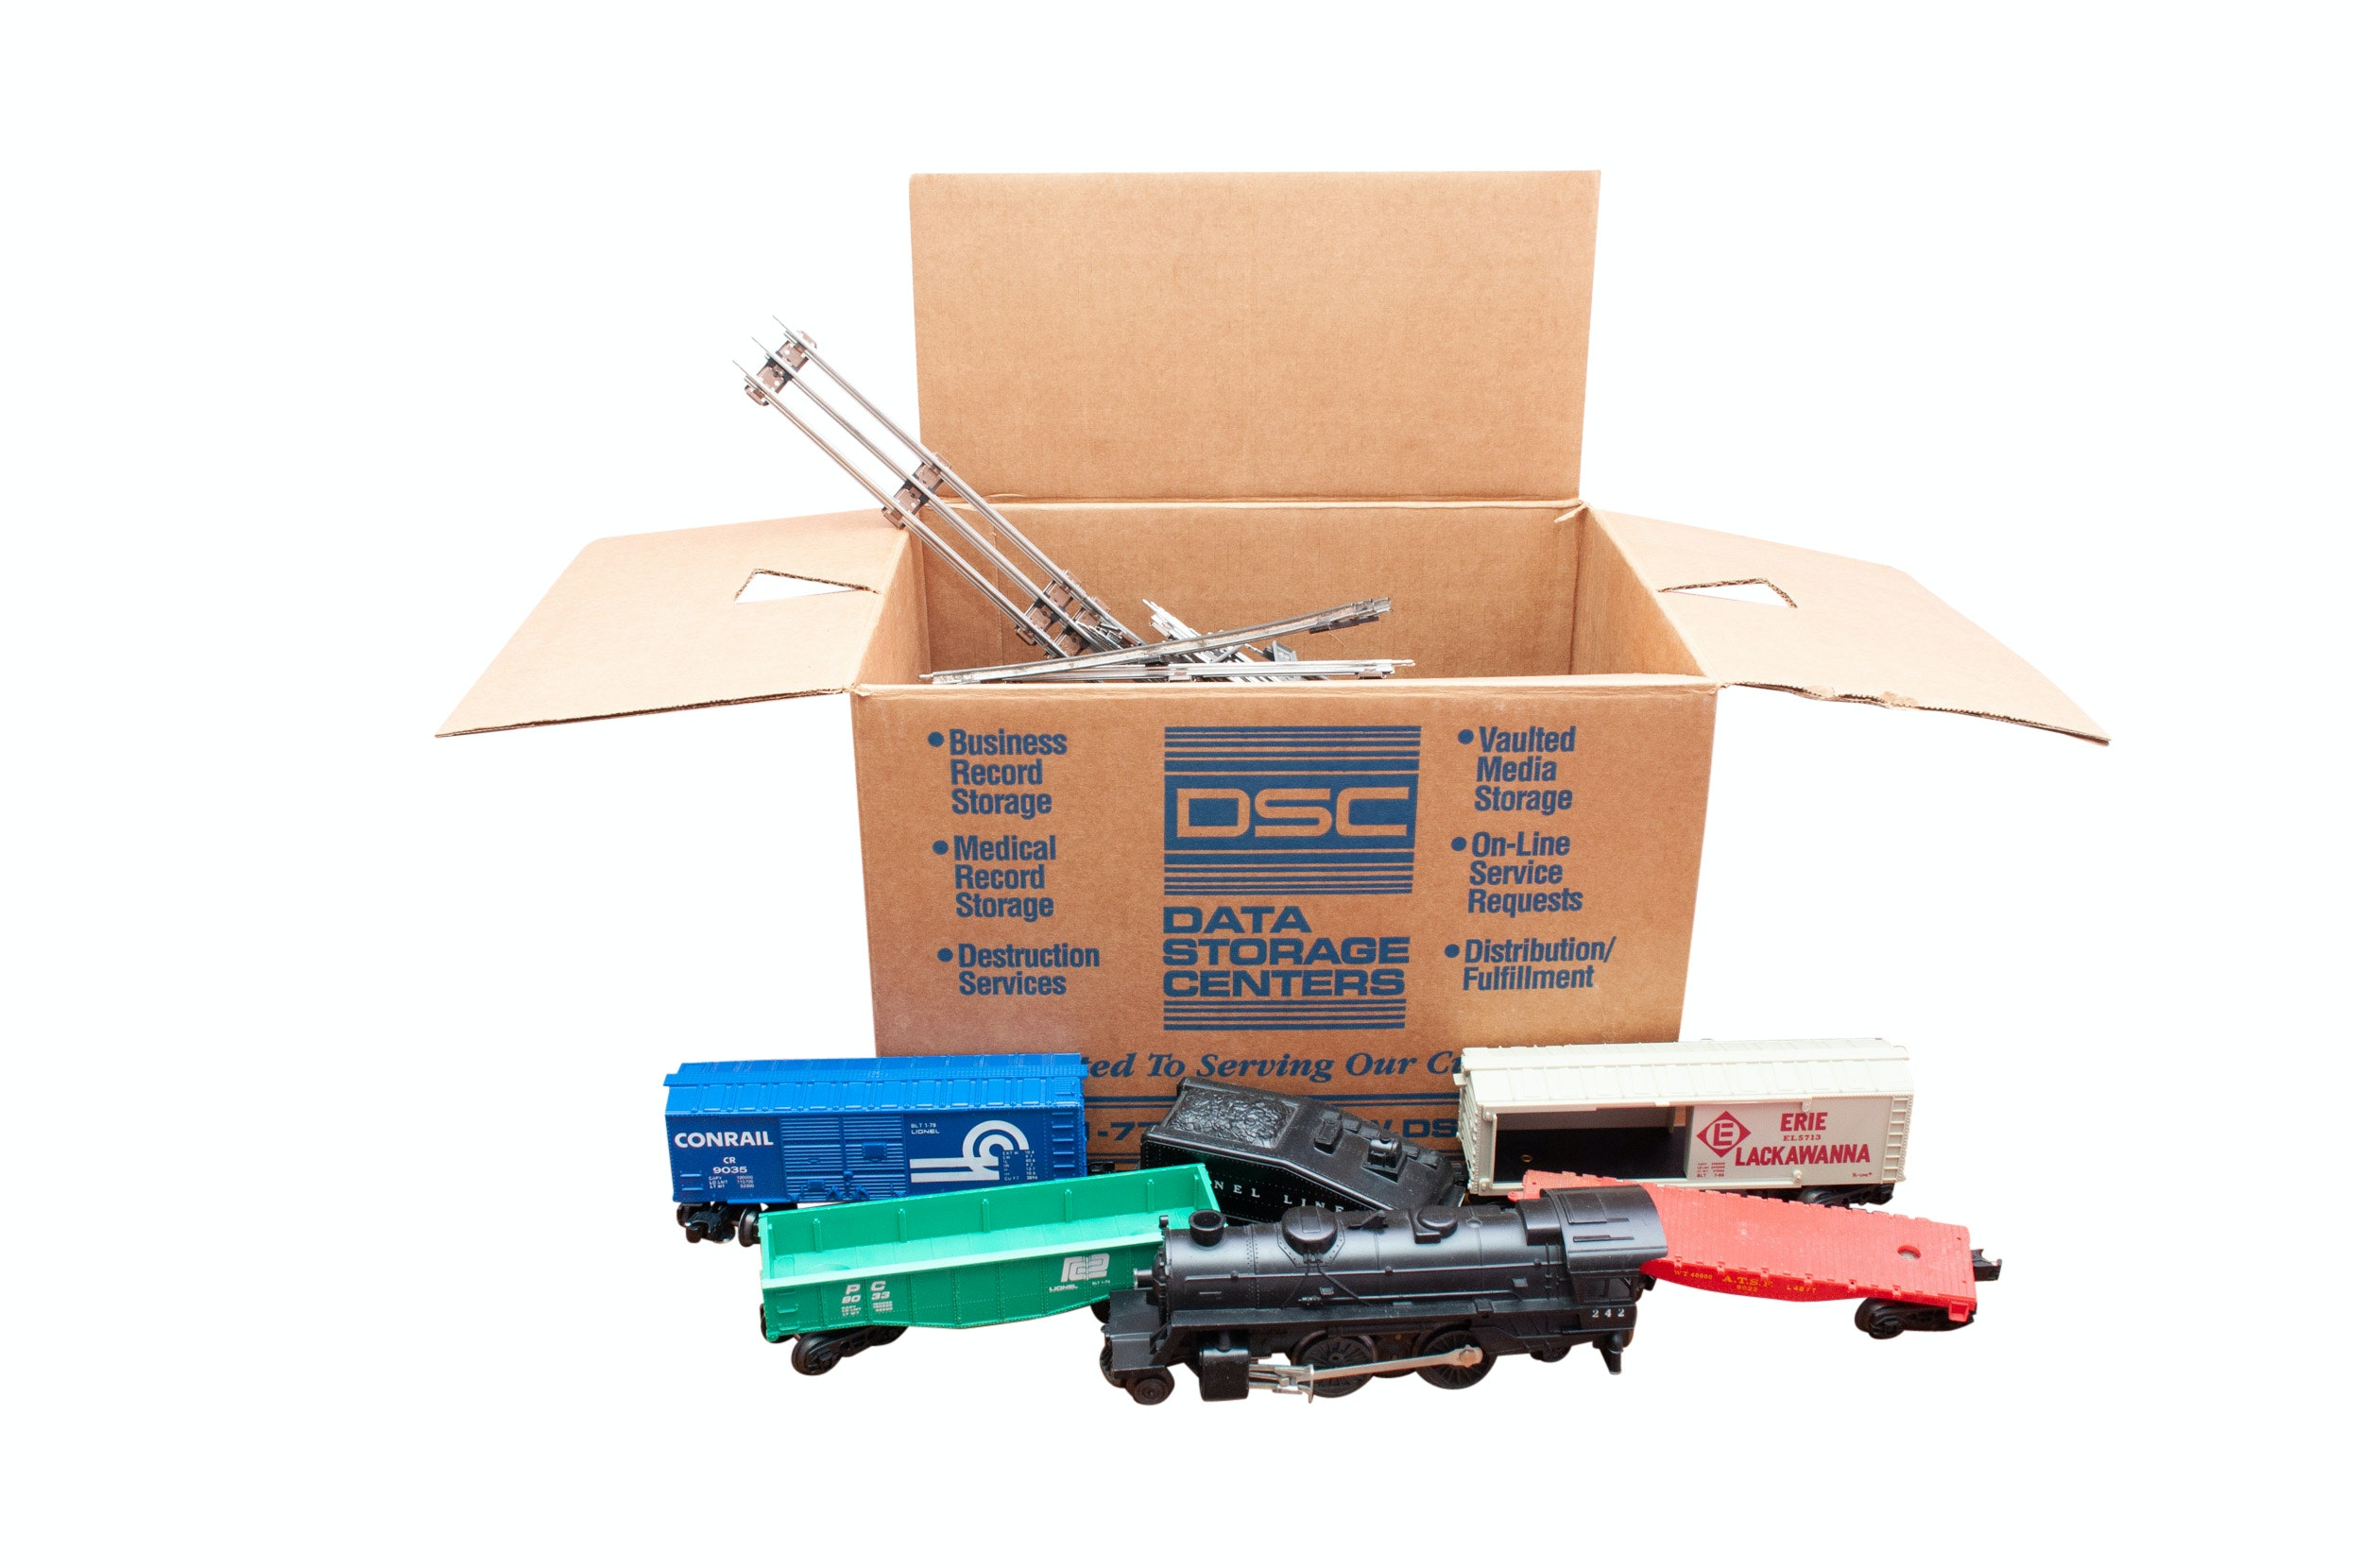 Lionel O Gauge Train Set with Tracks and Electric Transformer